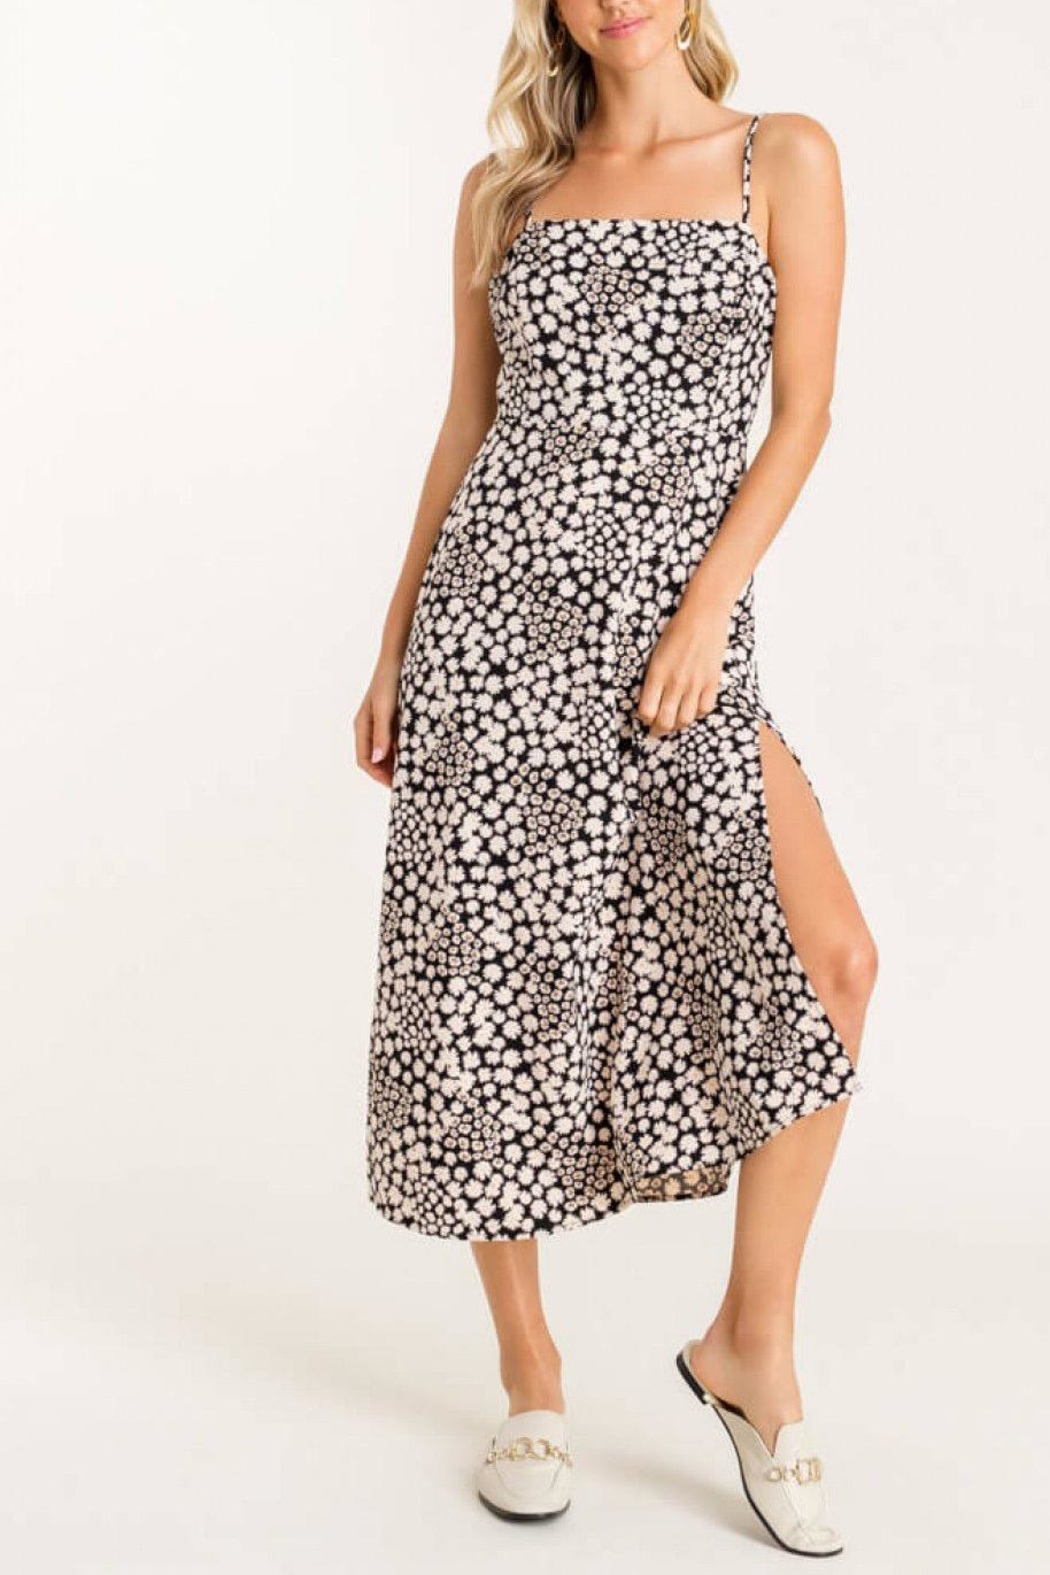 Lush Clothing  Square-Neckline Floral Dress - Side Cropped Image